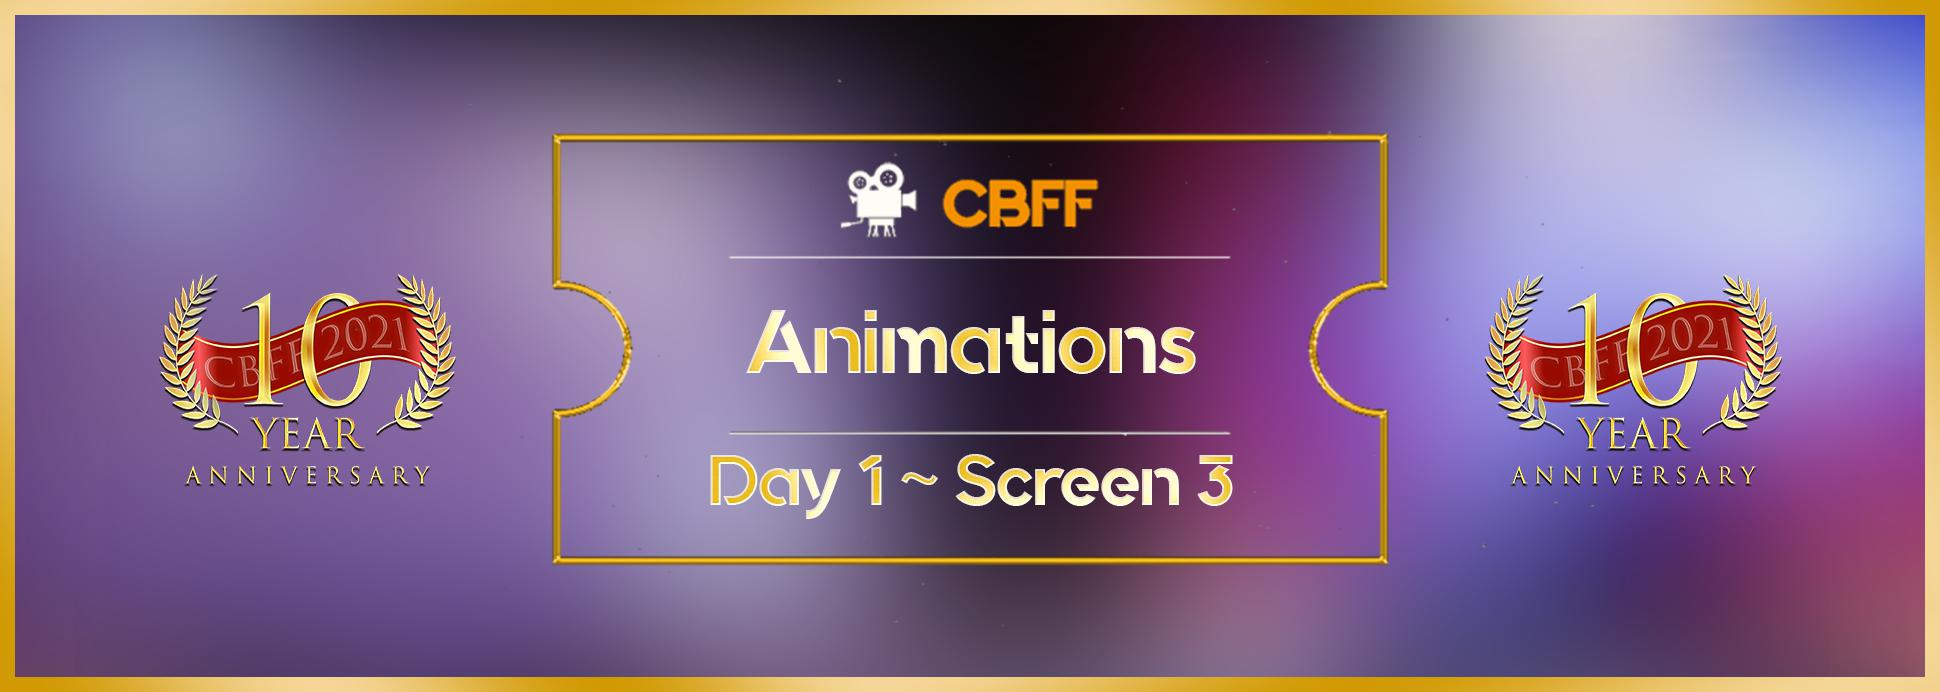 Day 1, Screen 3: Animation